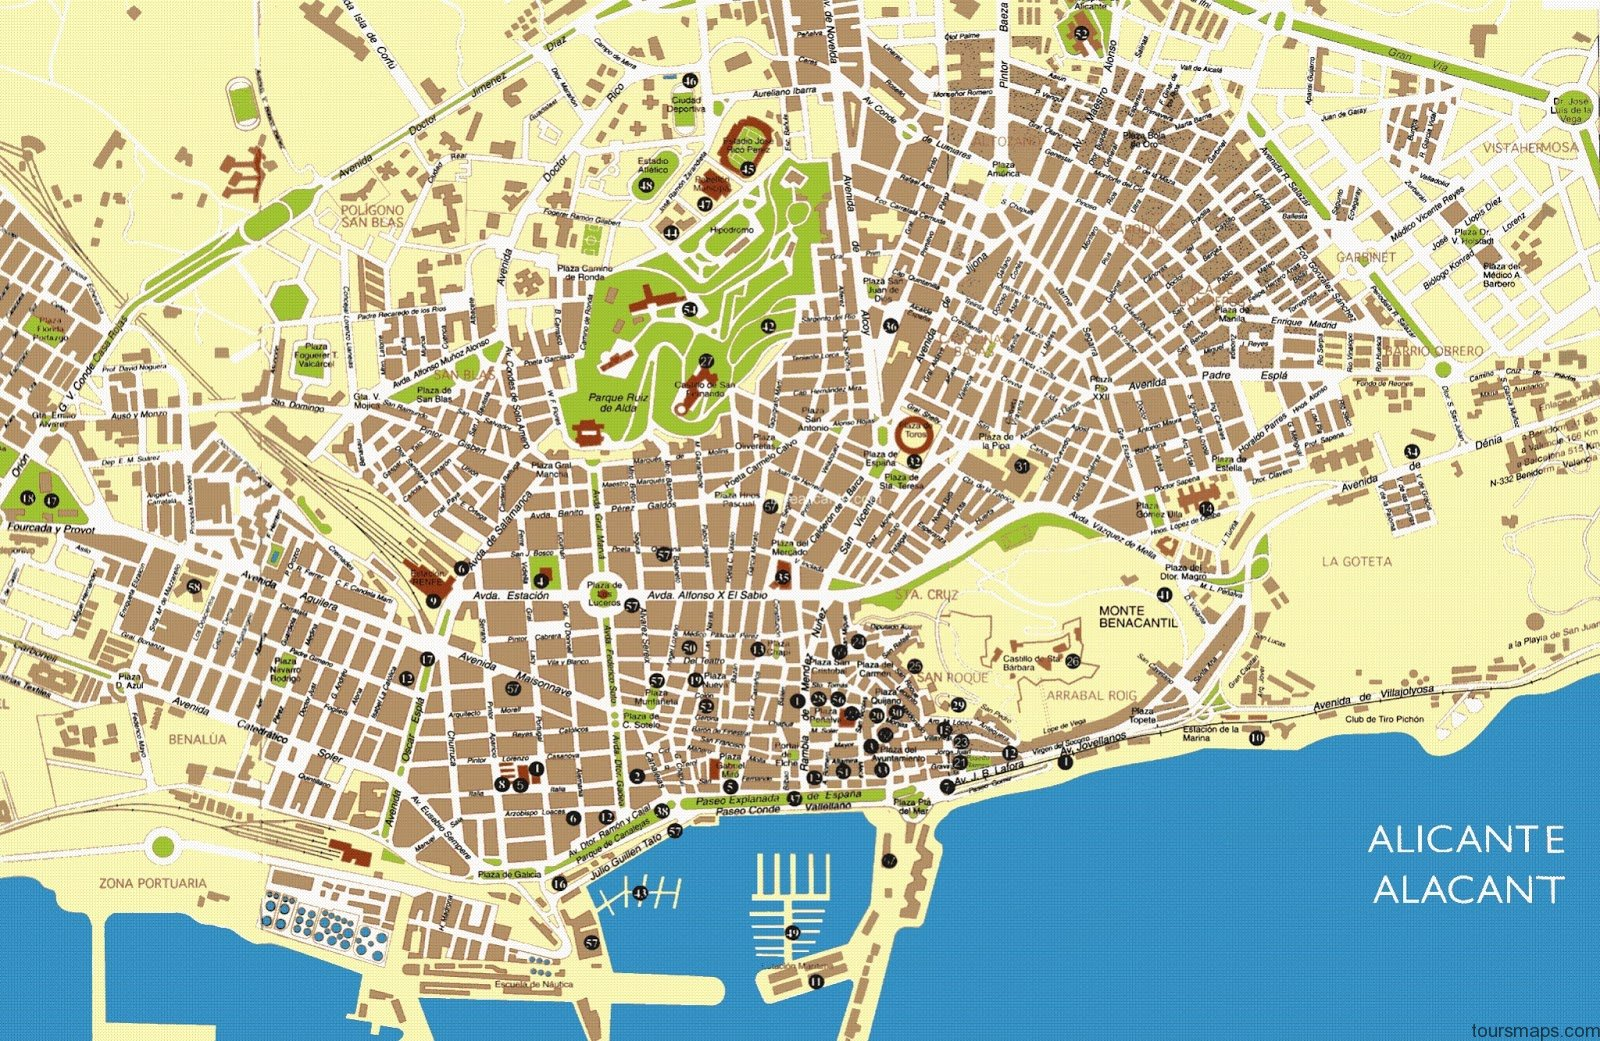 ALICANTE MAP ToursMapscom